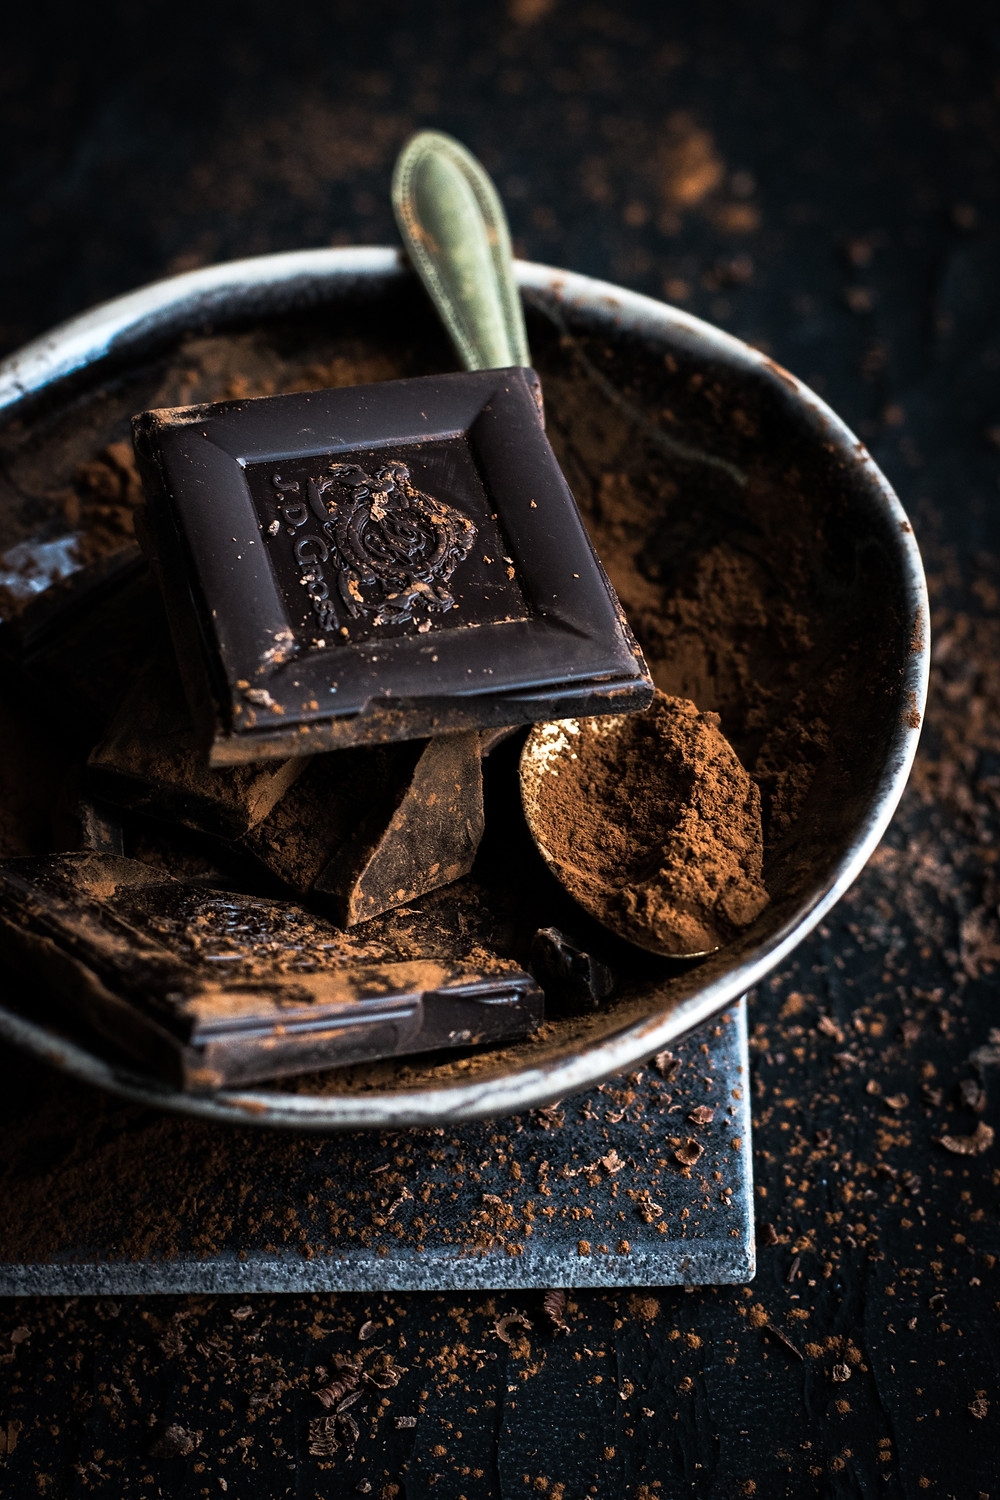 dark-rich-brown-chocolate-pieces-and-cocoa-powder-with-spoon-on-dish